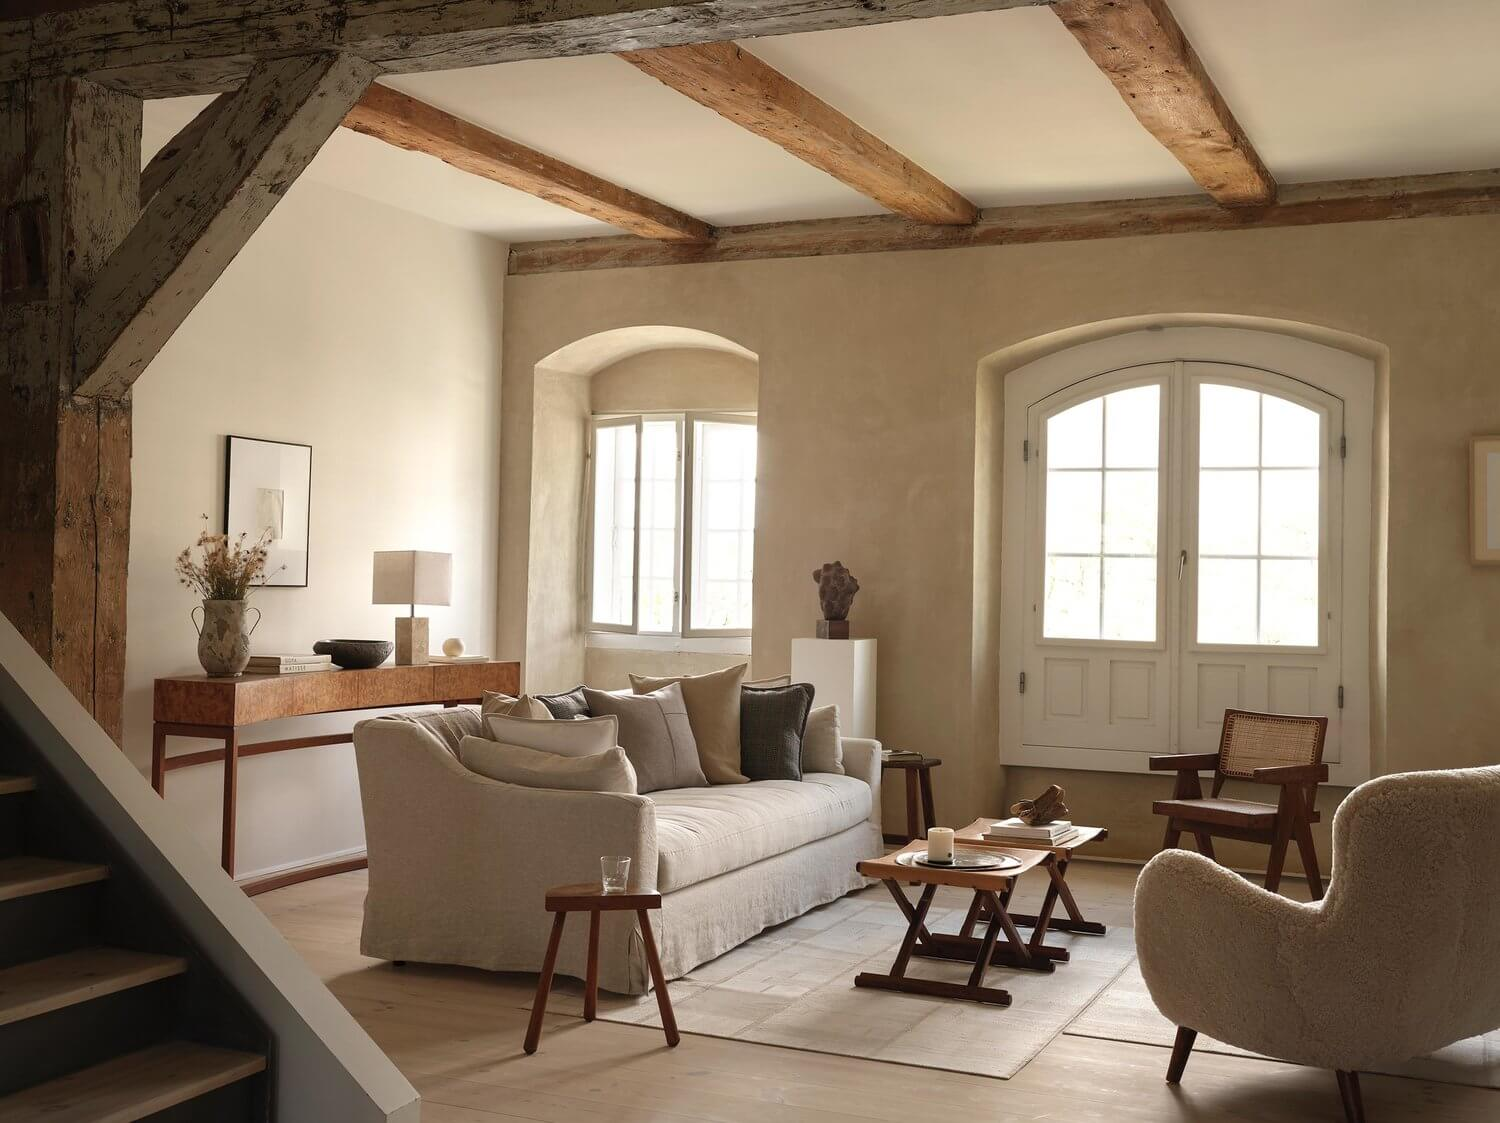 A Life of Simplicity by Zara Home